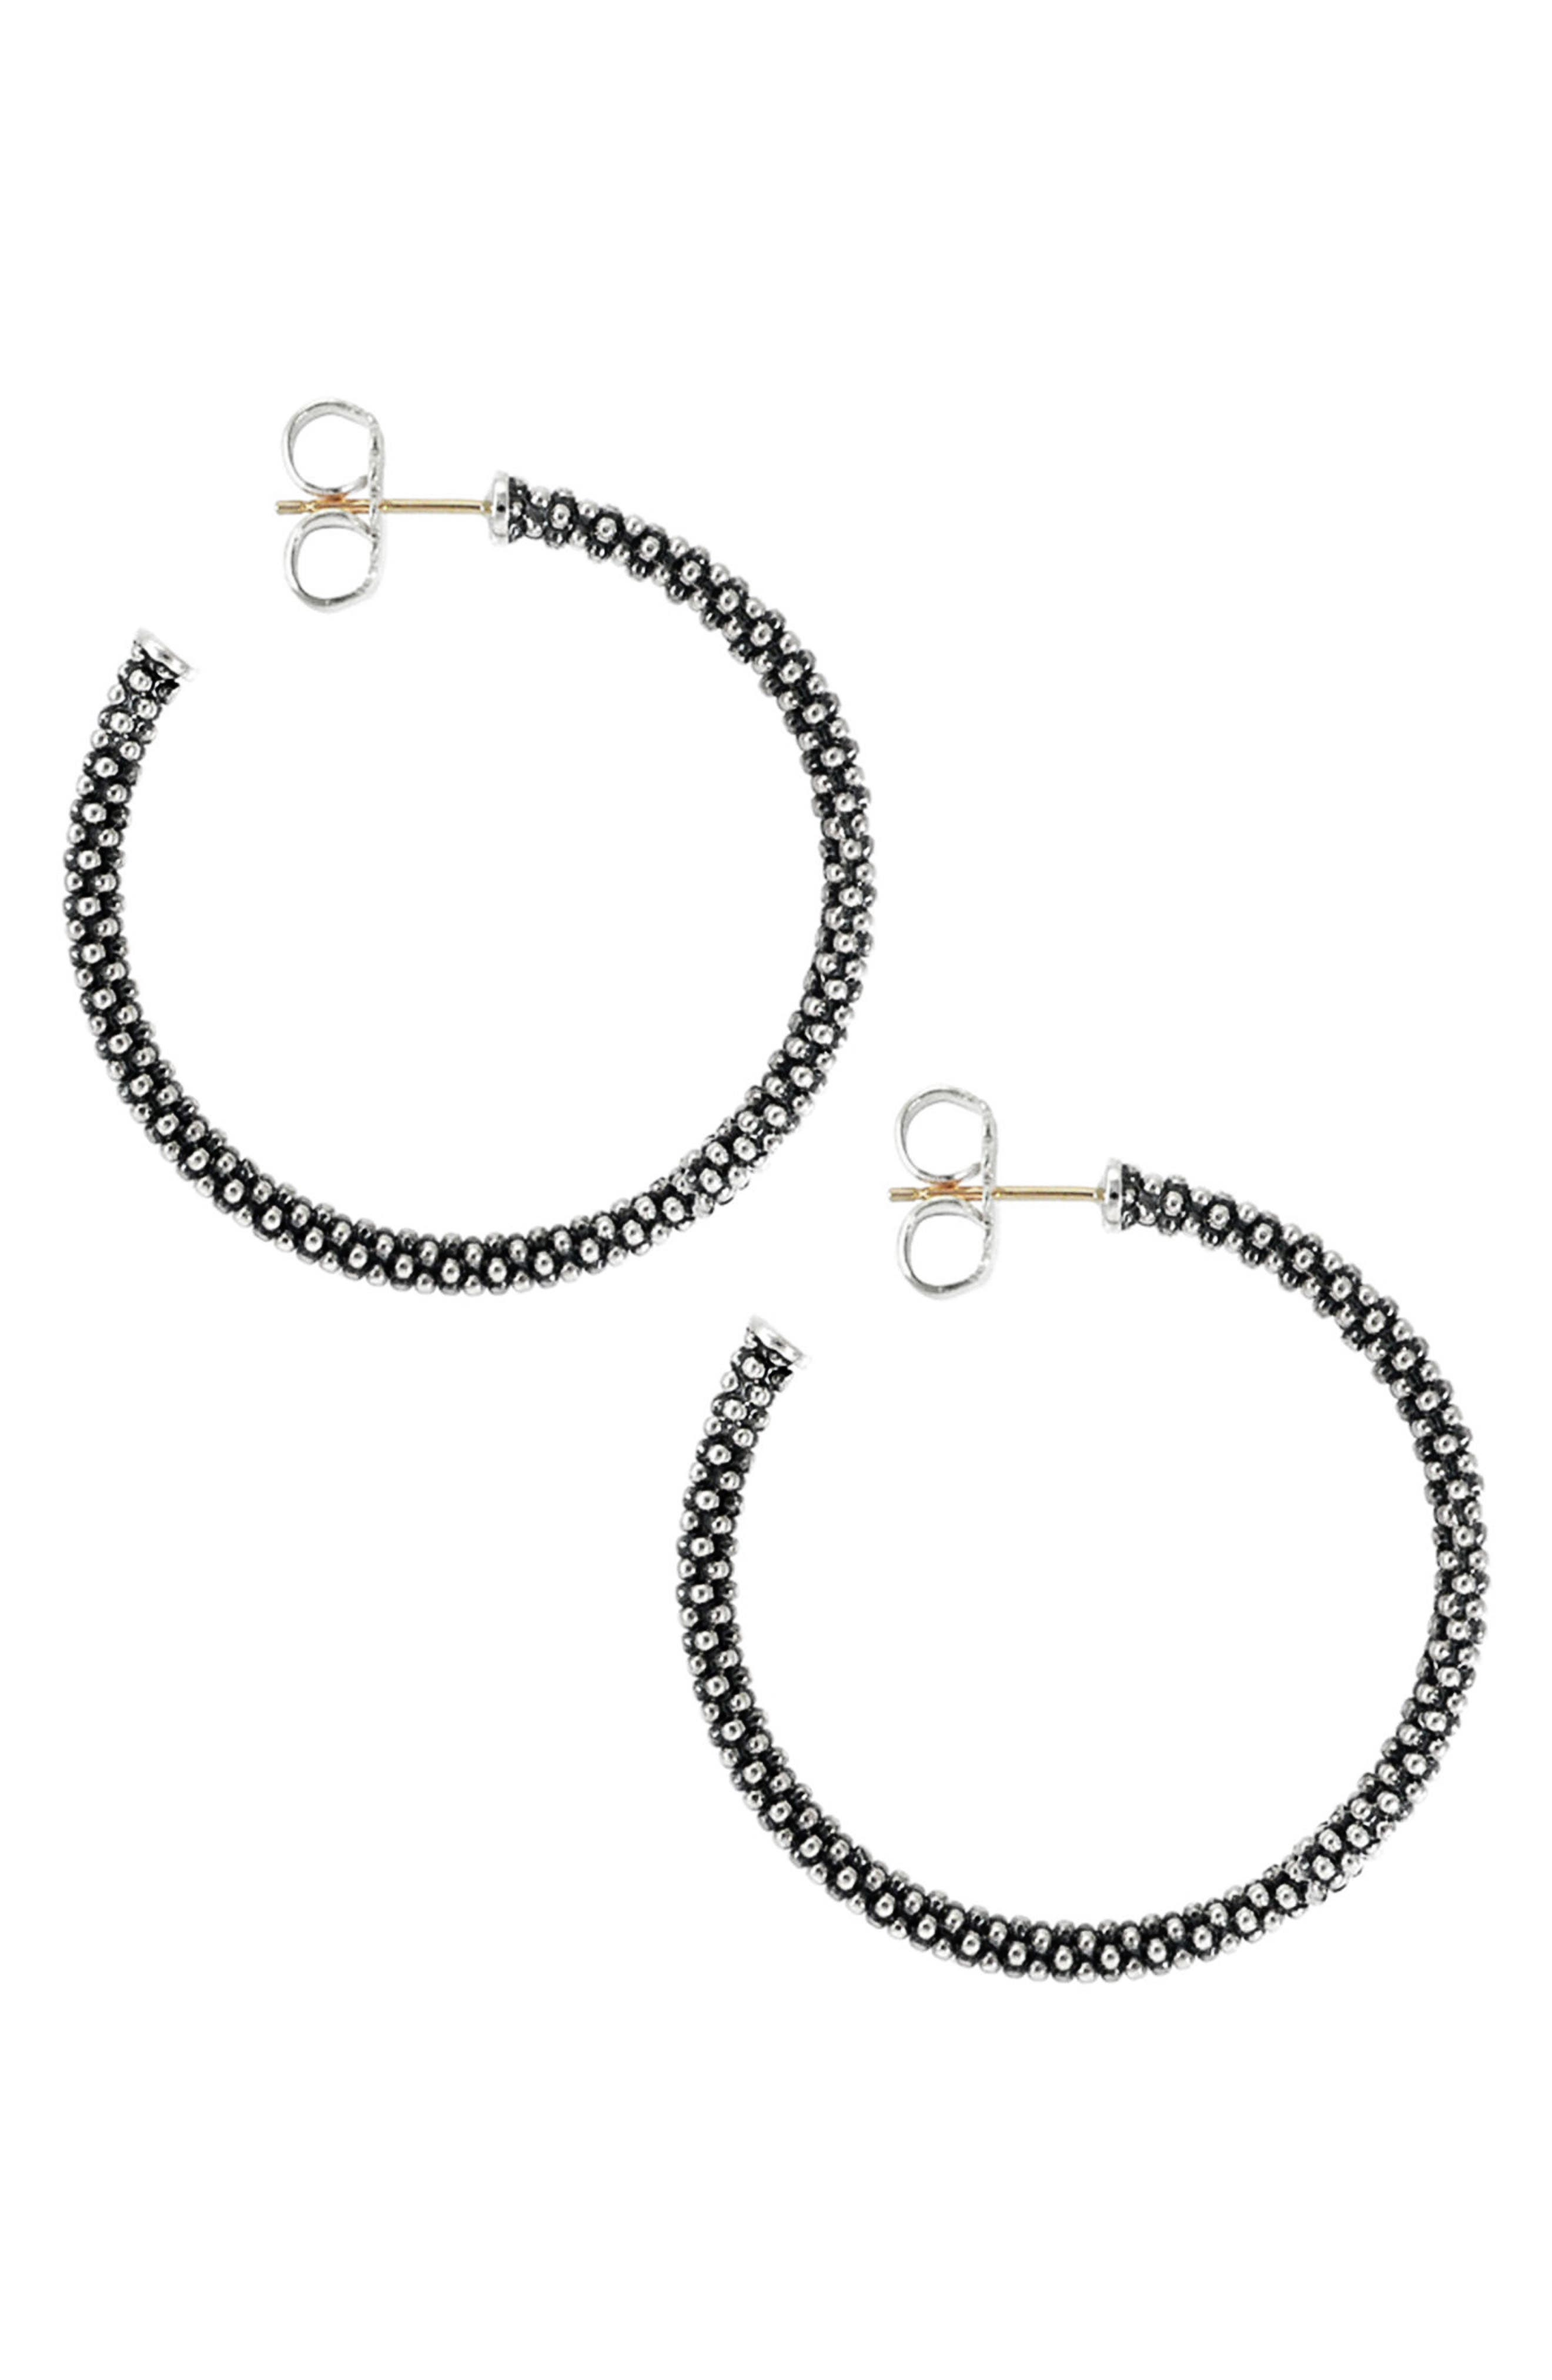 Medium Caviar Hoop Earrings,                             Alternate thumbnail 2, color,                             STERLING SILVER